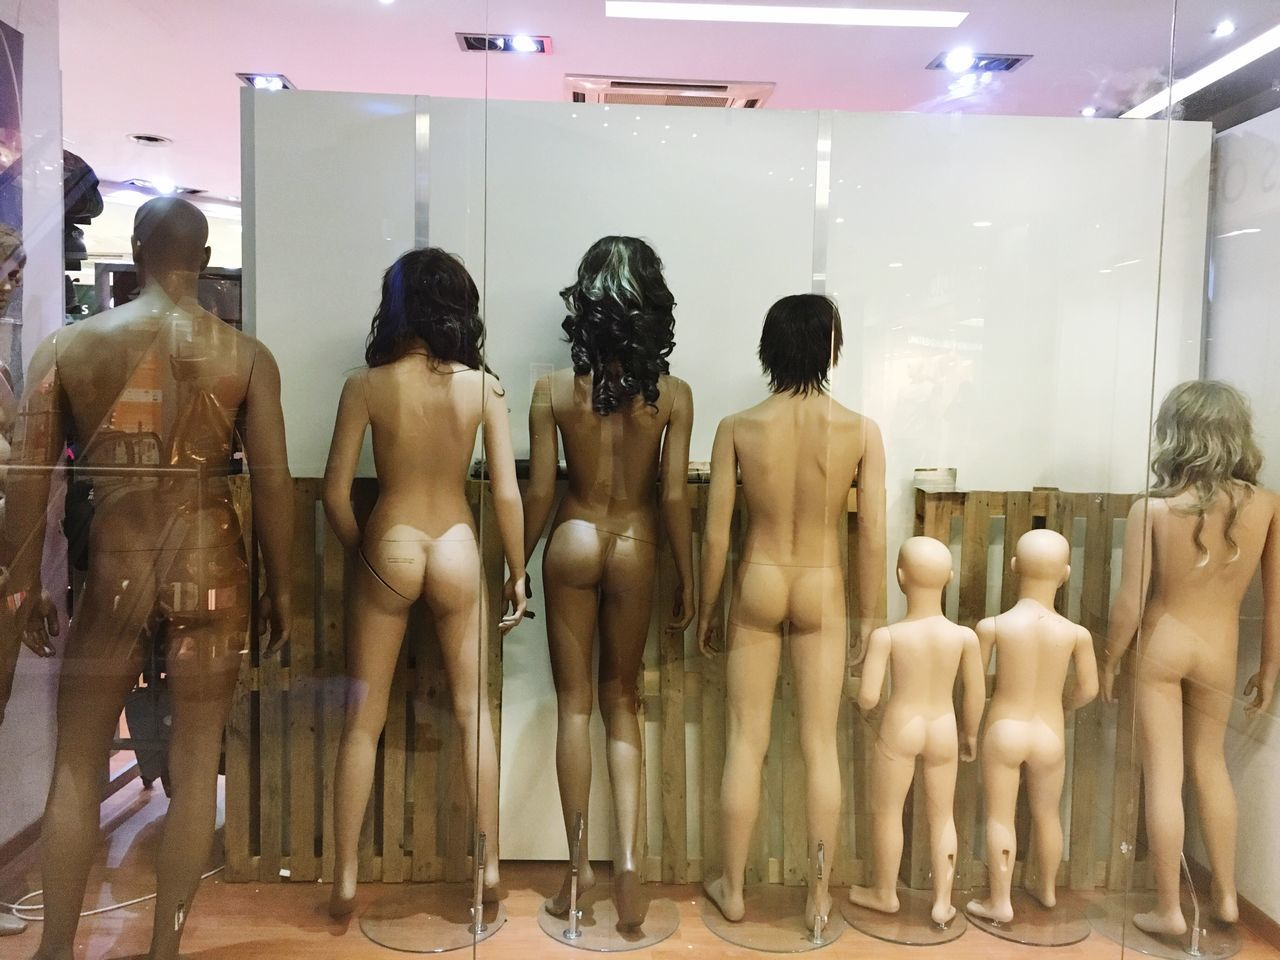 indoors, retail, in a row, men, human representation, for sale, store, art and craft, large group of objects, art, arrangement, hanging, shop, person, variation, rear view, market stall, market